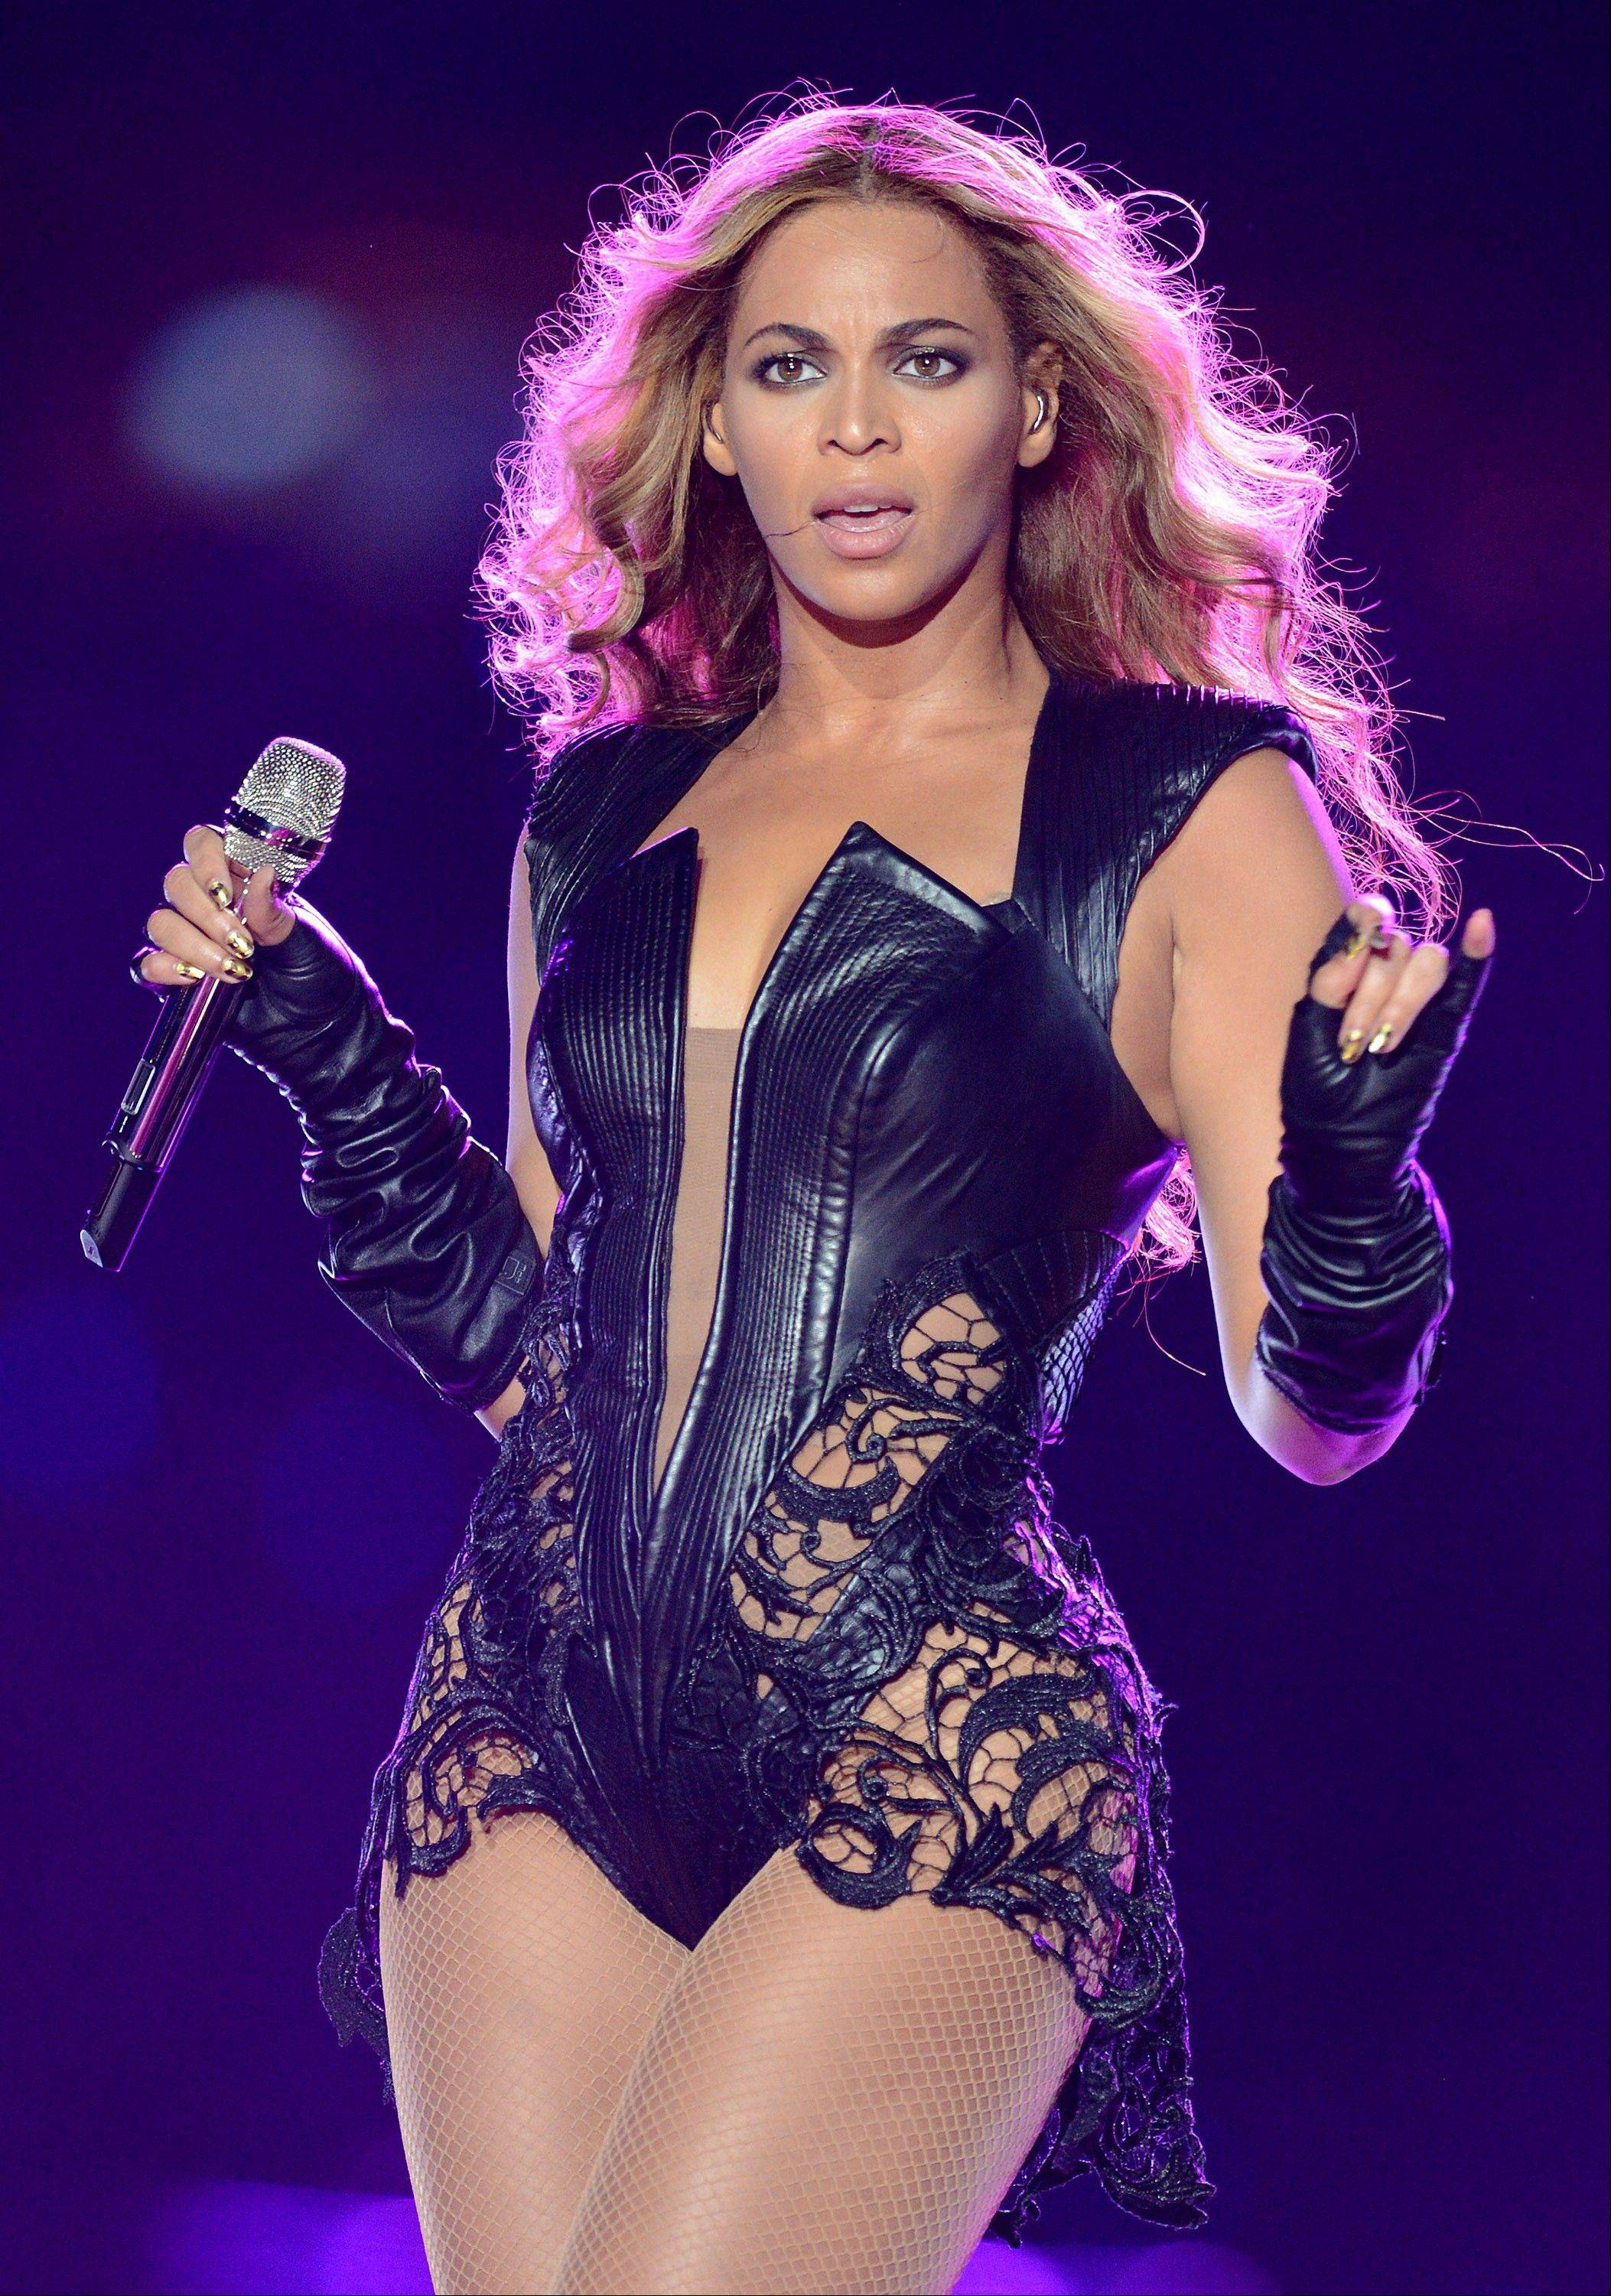 In this Feb. 3, 2013 file photo, recording artist Beyonce performs at Super Bowl XLVII, in New Orleans. Beyonce stopped short of apologizing for using a sample of audio from the Space Shuttle Challenger explosion in a statement released on Tuesday to ABC. The pop superstar explained the use of the short snippet at the beginning of her song �XO� from her new self-titled album after it brought criticism from the wife of the commander at the helm of the Challenger when it exploded in 1986 and others.